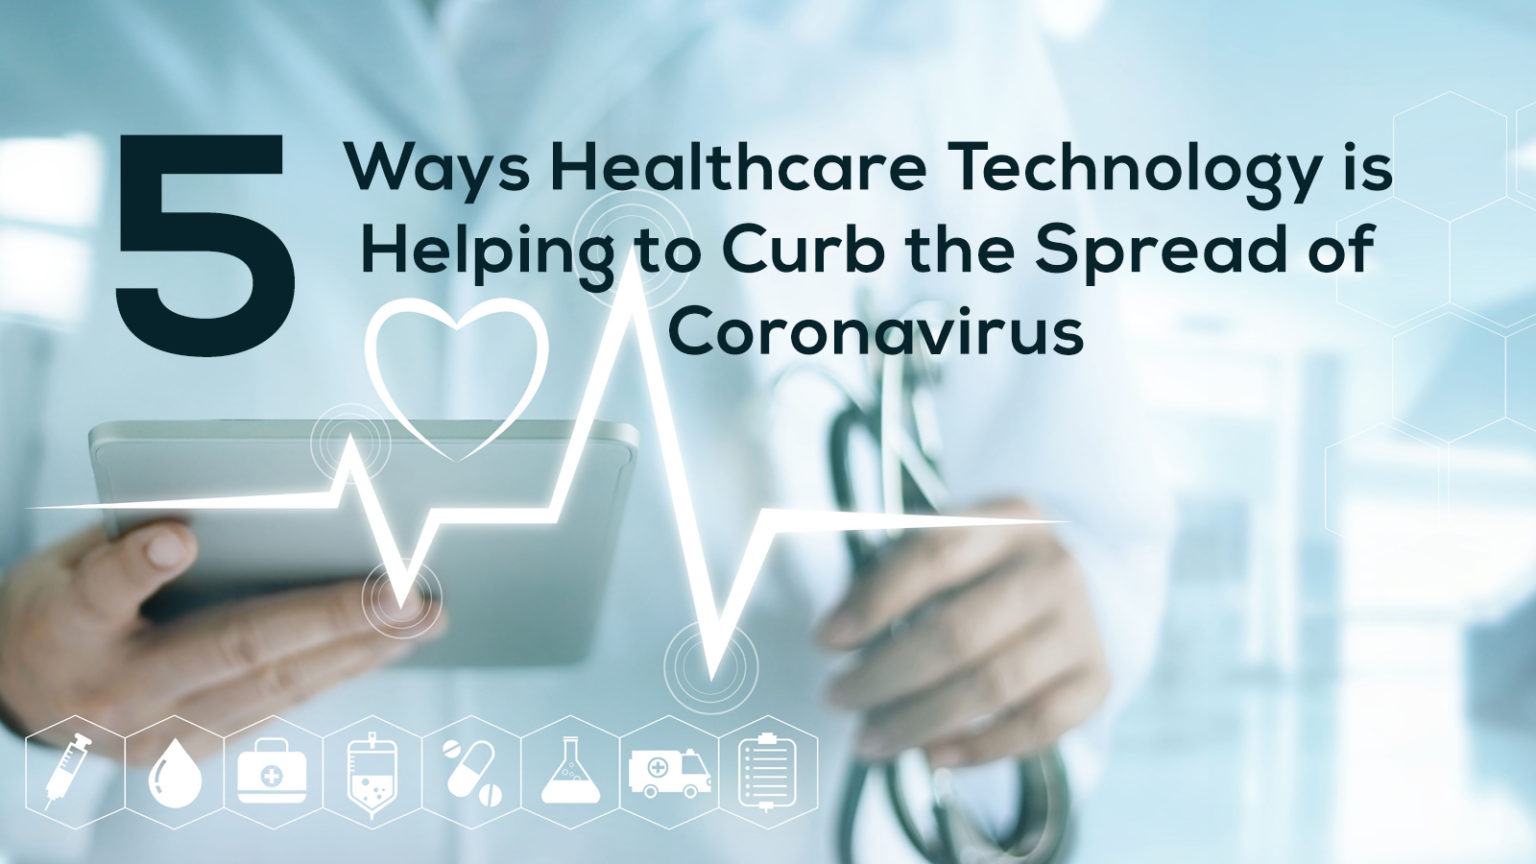 5 Ways Healthcare Technology is Helping to Curb the Spread of Coronavirus